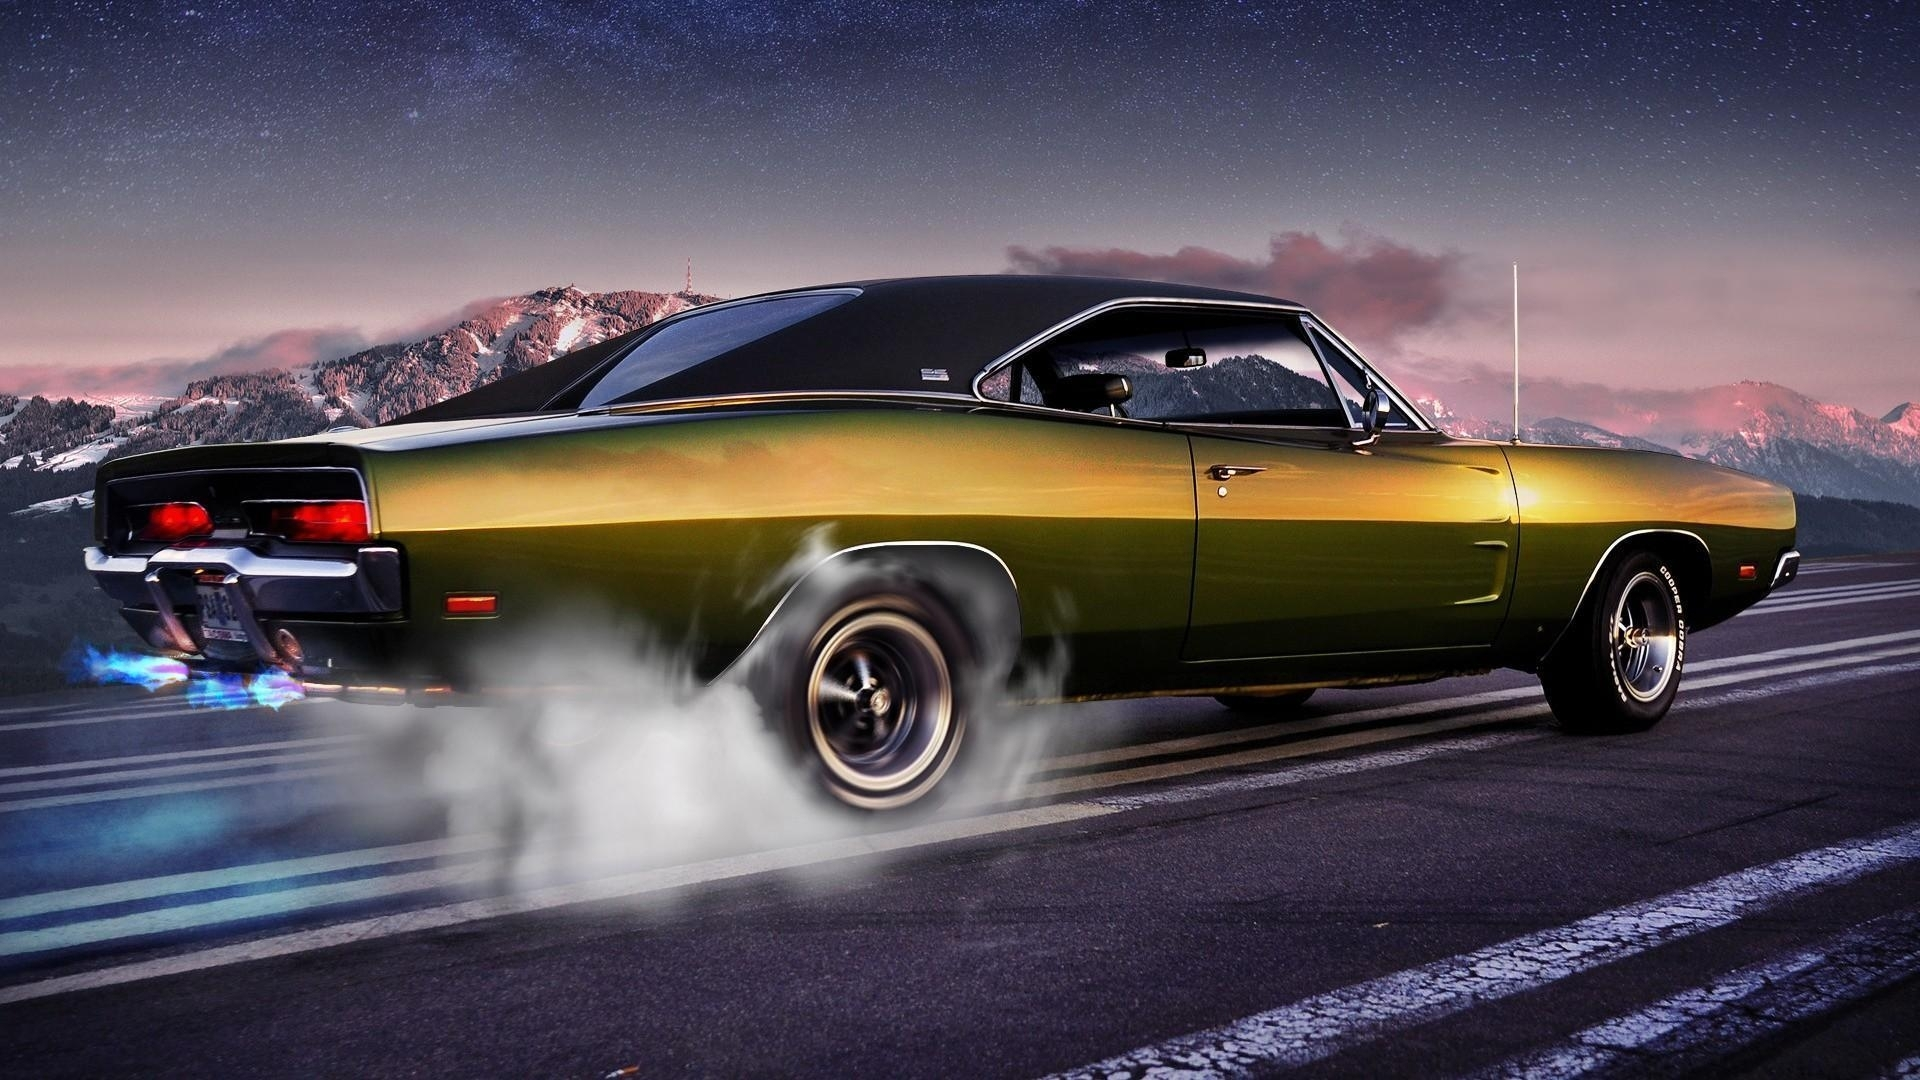 Title Muscle Cars Hd Wallpapers Wallpaper Cave Dimension  File Type Jpg Jpeg